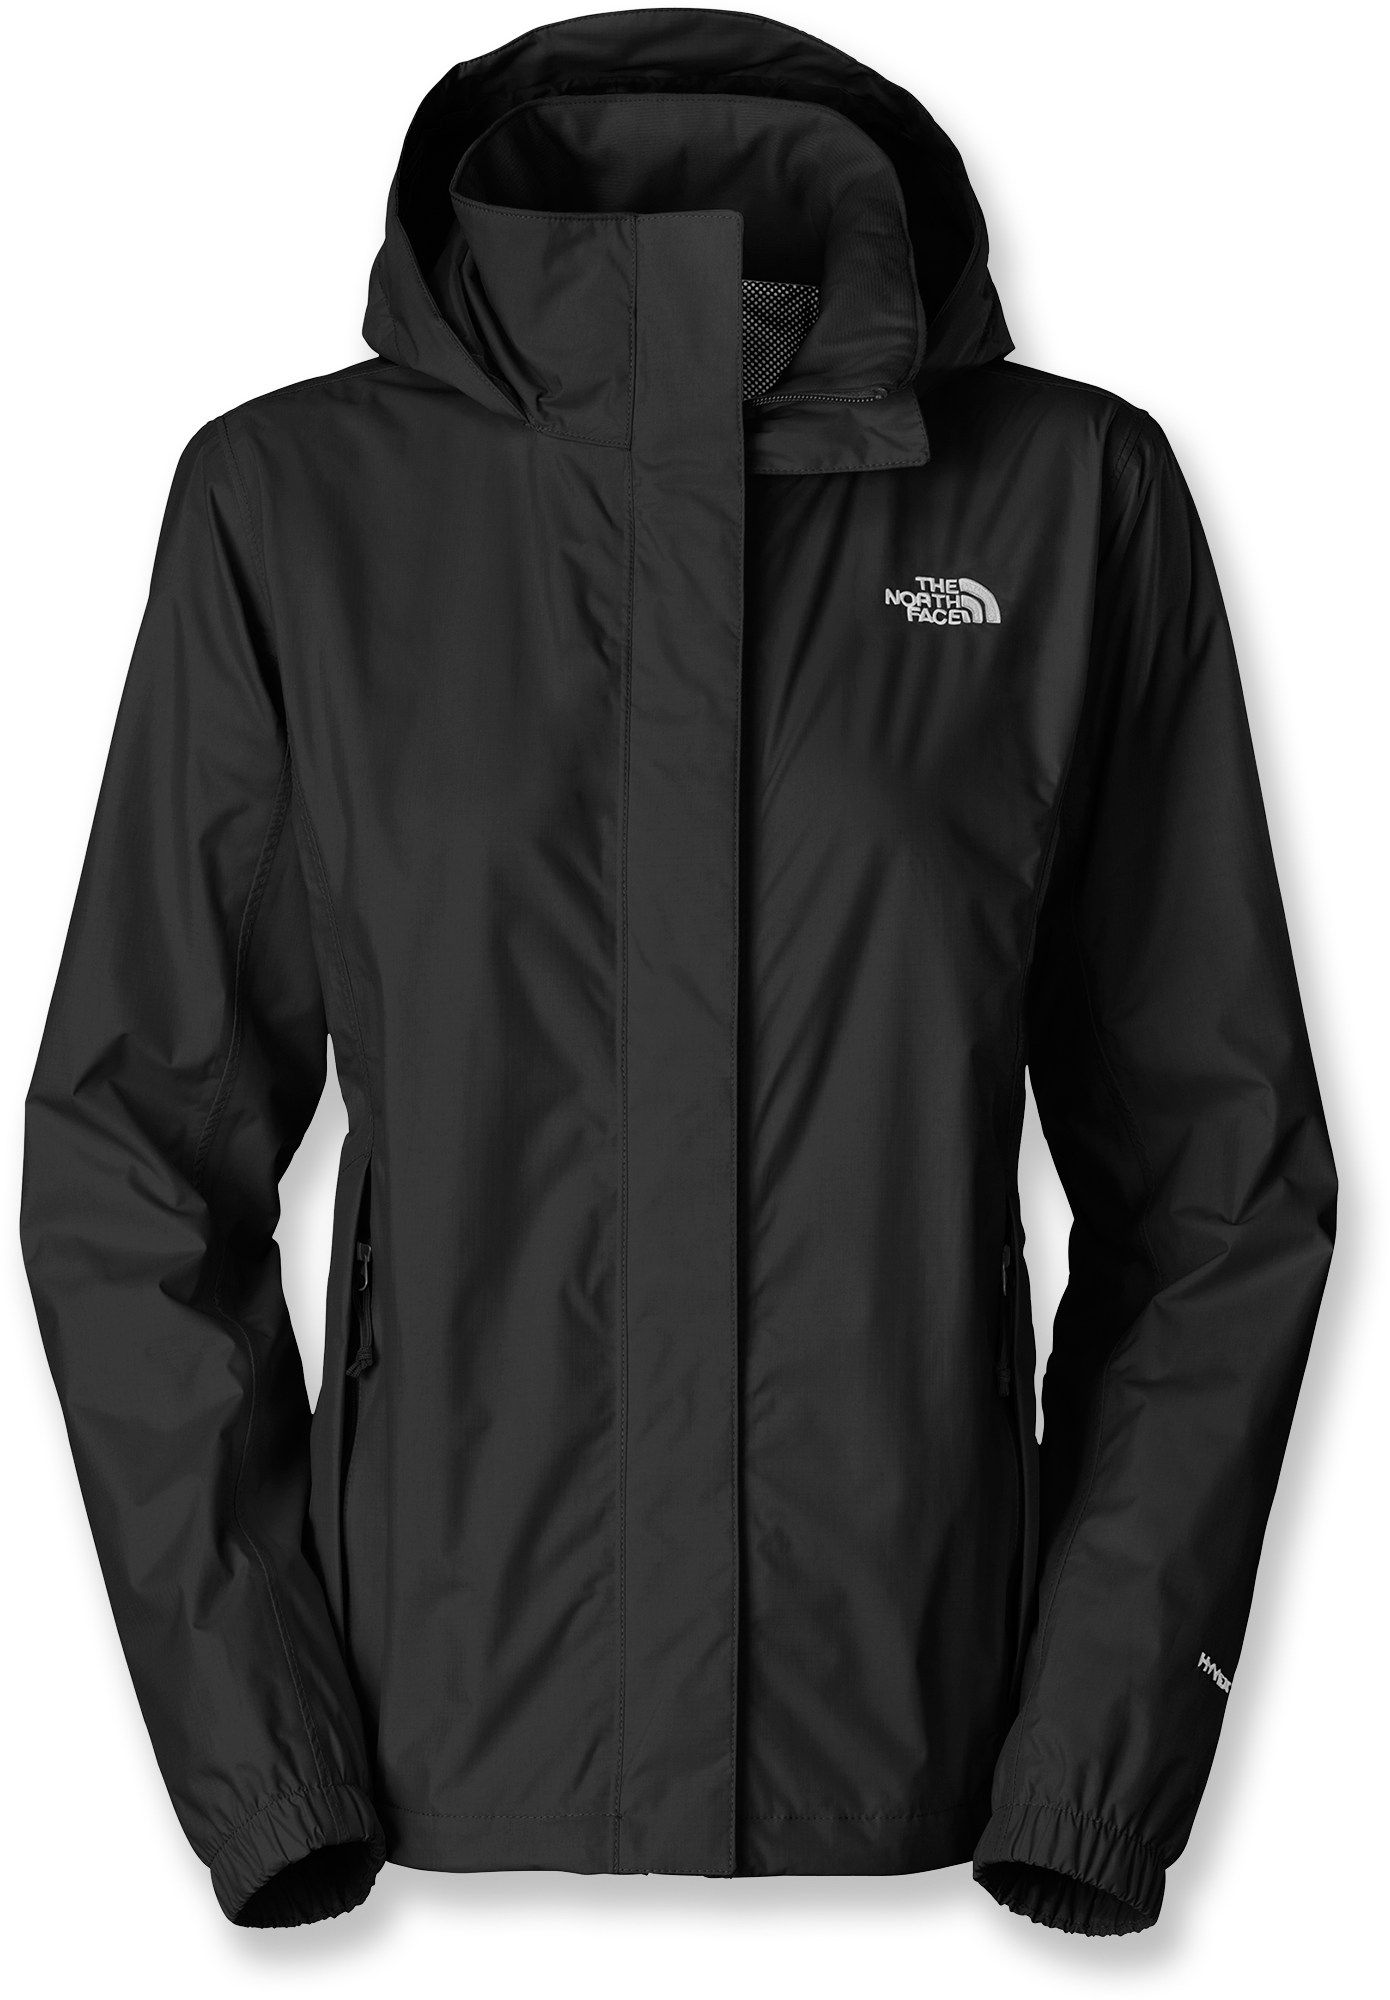 66b406ba88 ... promo code the north face resolve rain jacket womens free shipping at  rei fac08 ca74f